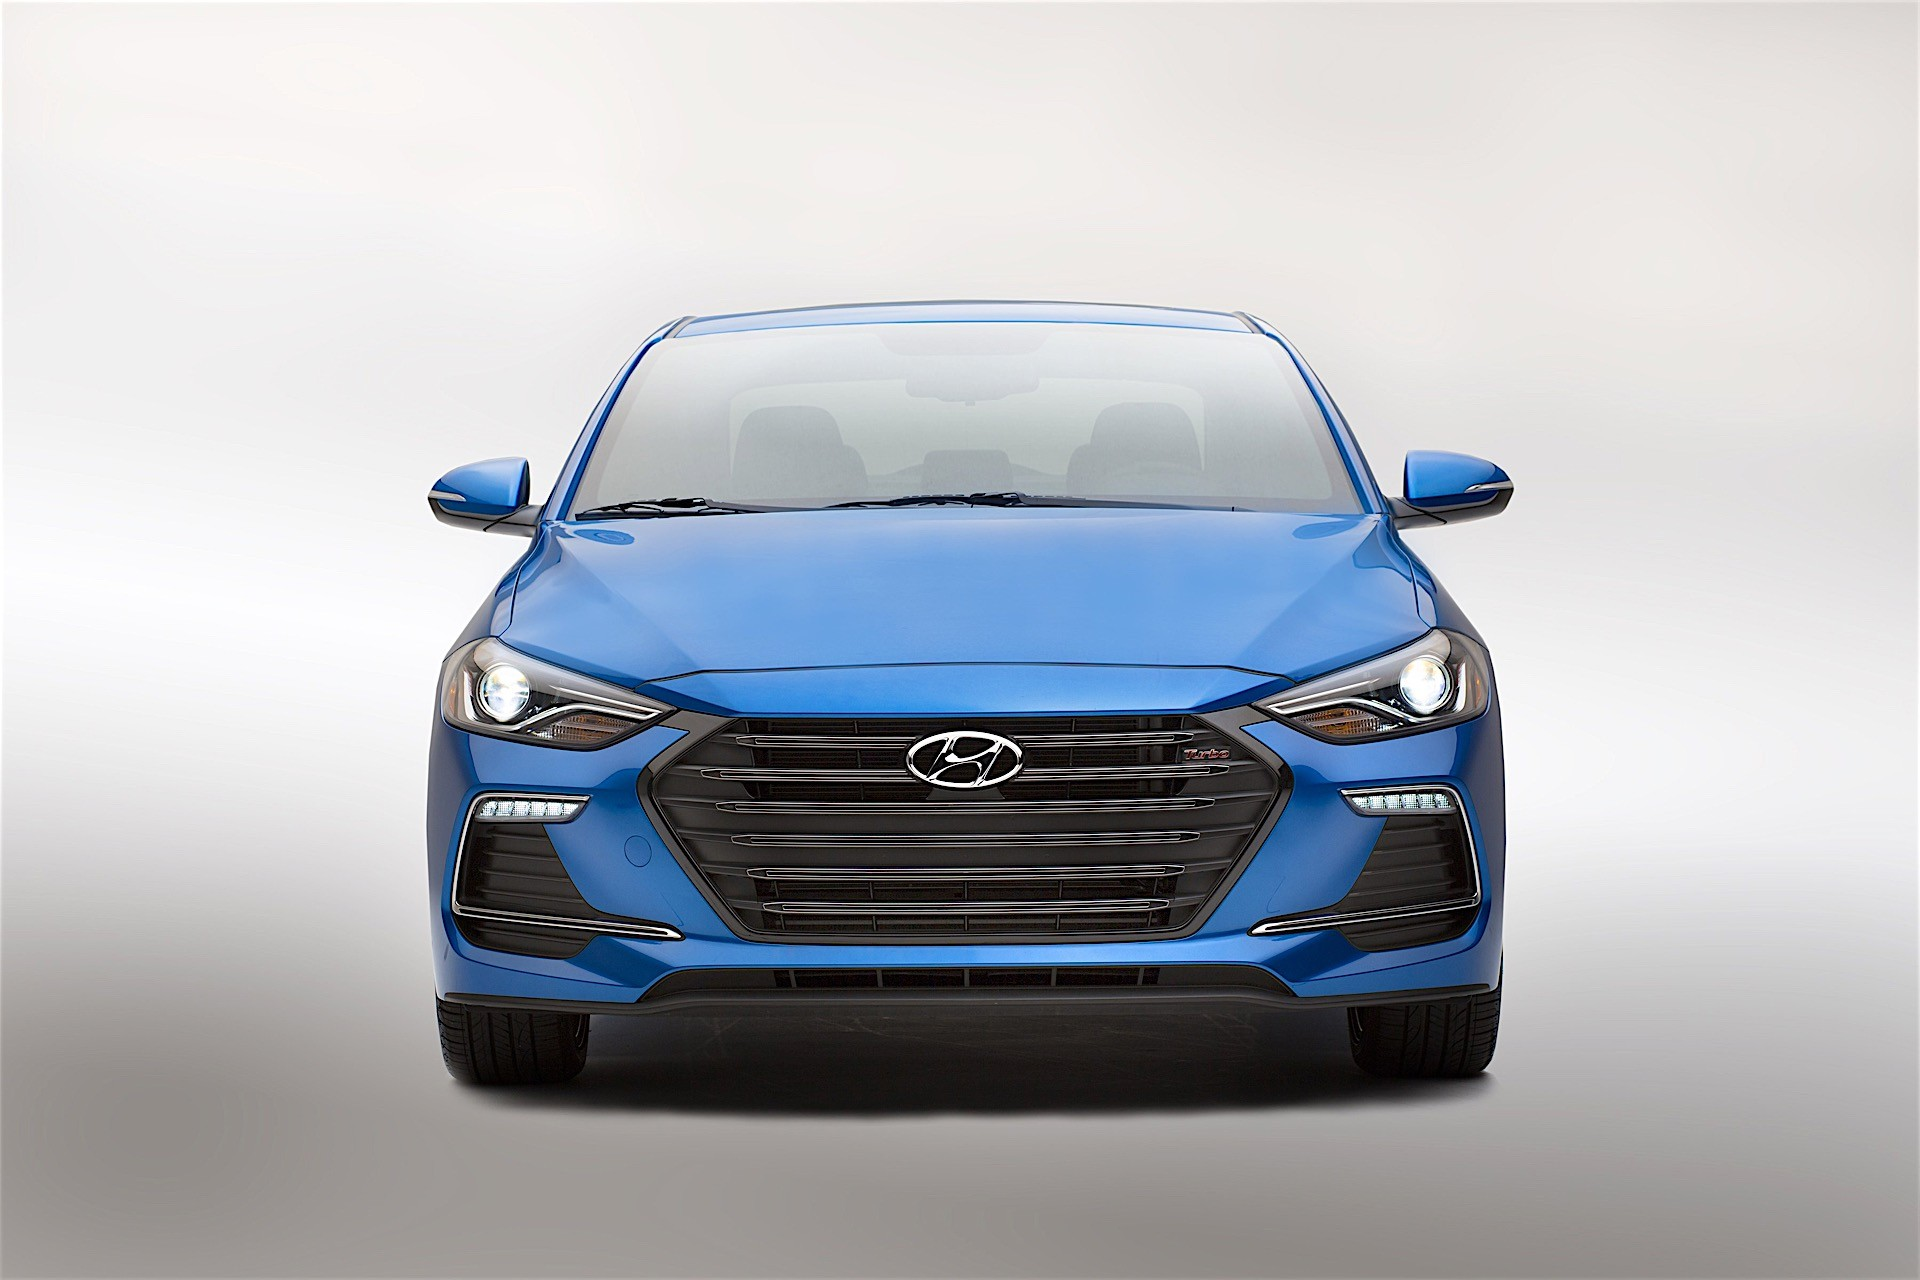 2017 Hyundai Elantra Sport Revealed Becomes Most Powerful